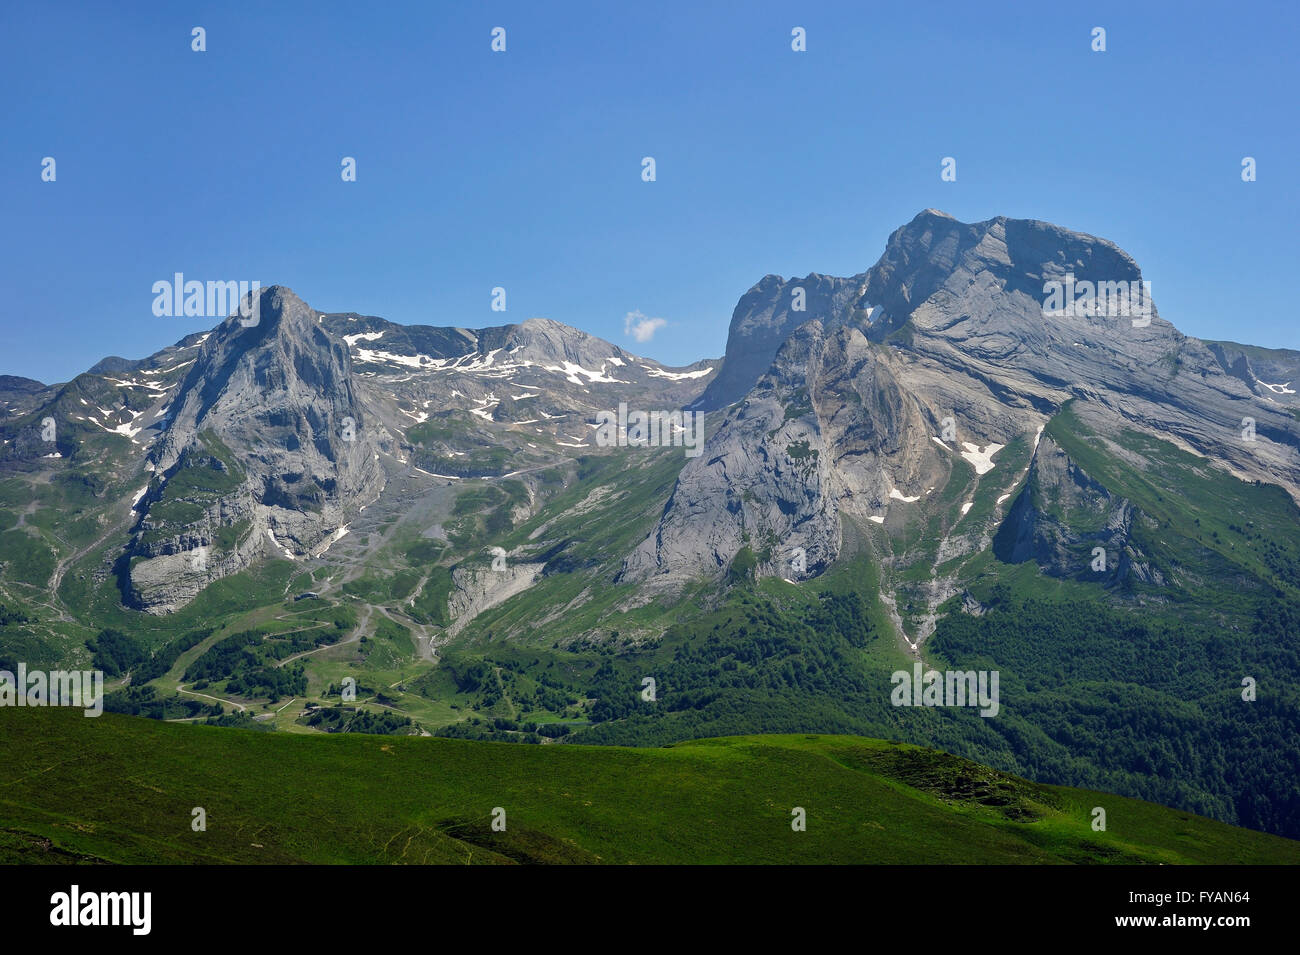 View over the Cirque de Gourette and the Massif du Ger seen from the Col d'Aubisque in the Pyrenees, France - Stock Image